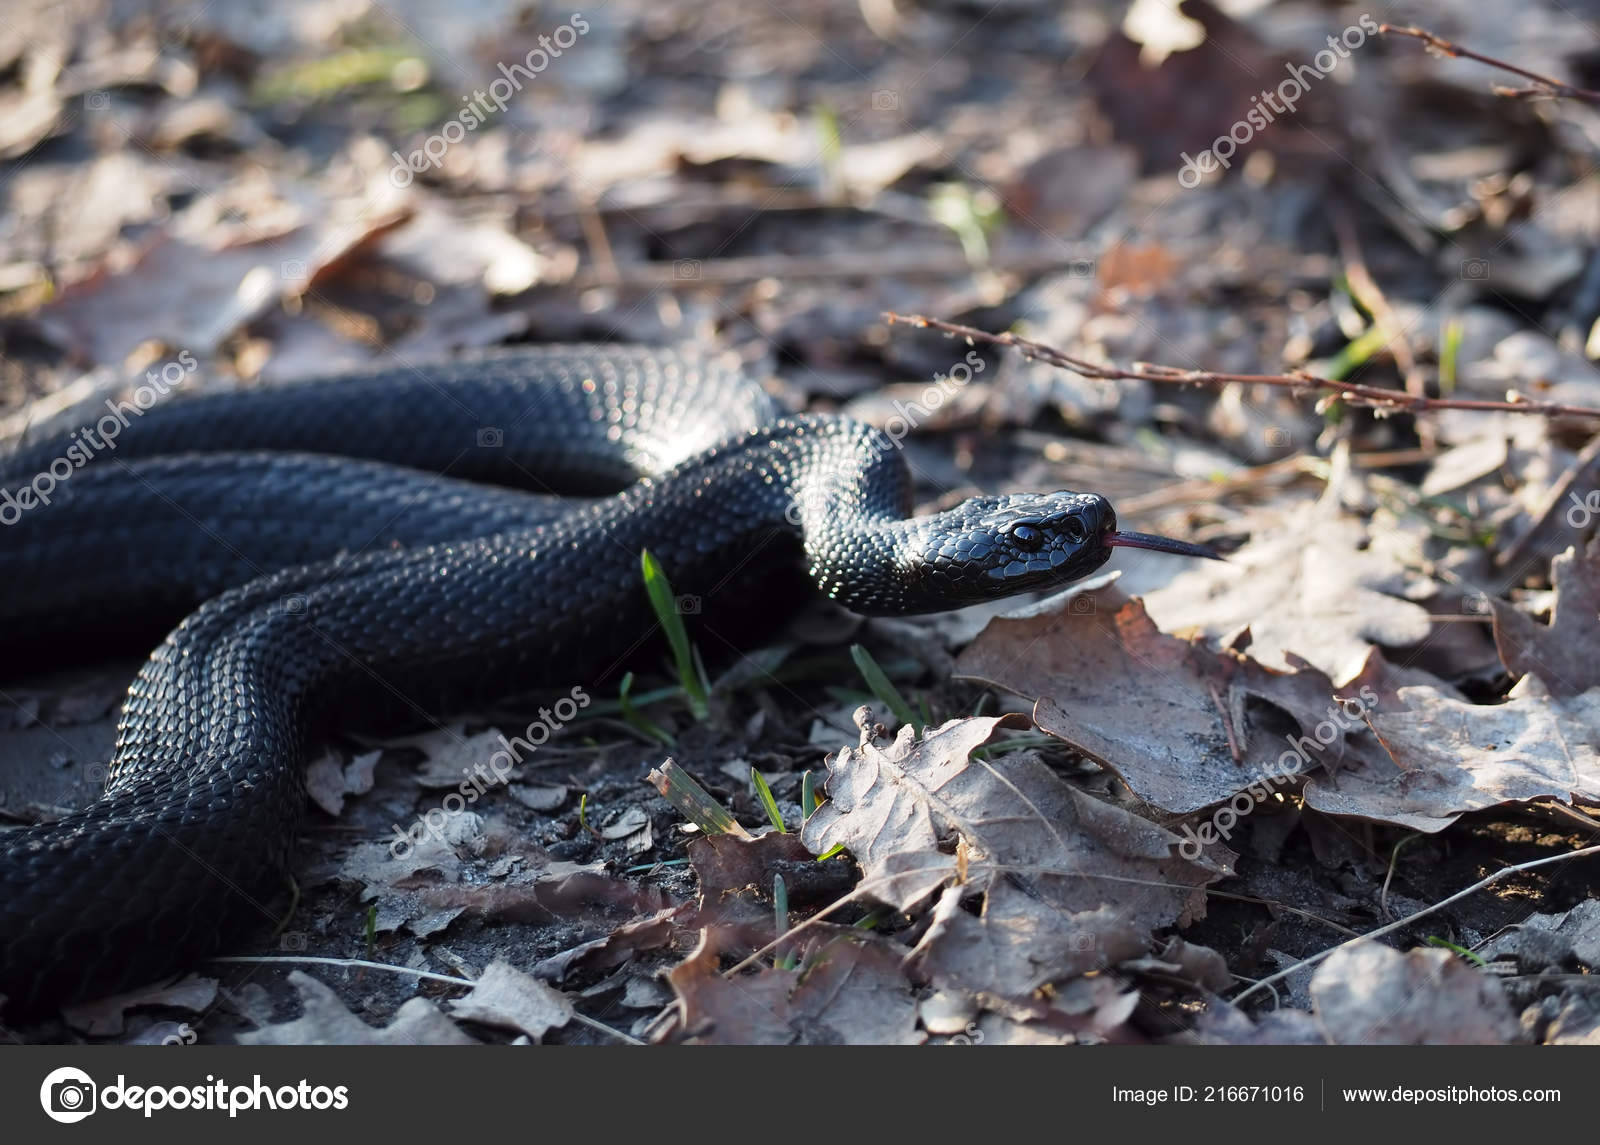 Black Snake Creeps Forest Autumn Leaves Shows Red Tongue Stock Photo C Mironenko S V 1990 Gmail Com 216671016